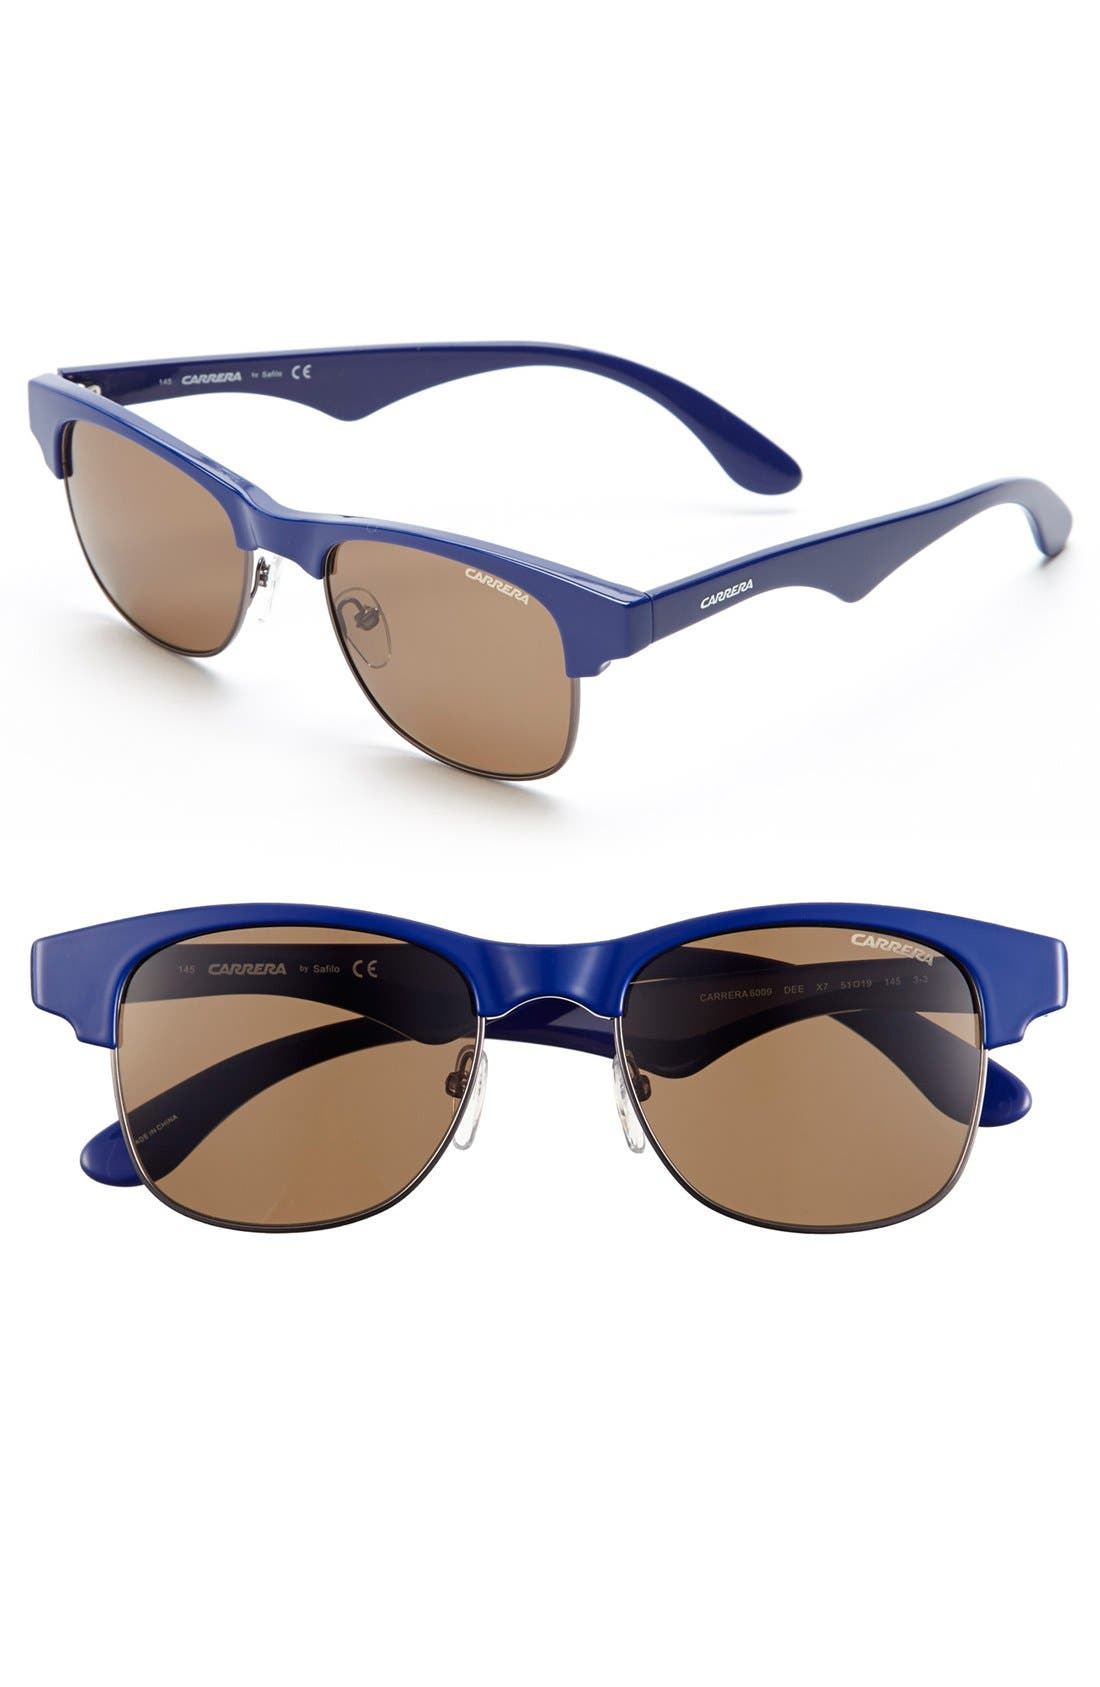 Main Image - Carrera Eyewear 51mm Browline Sunglasses